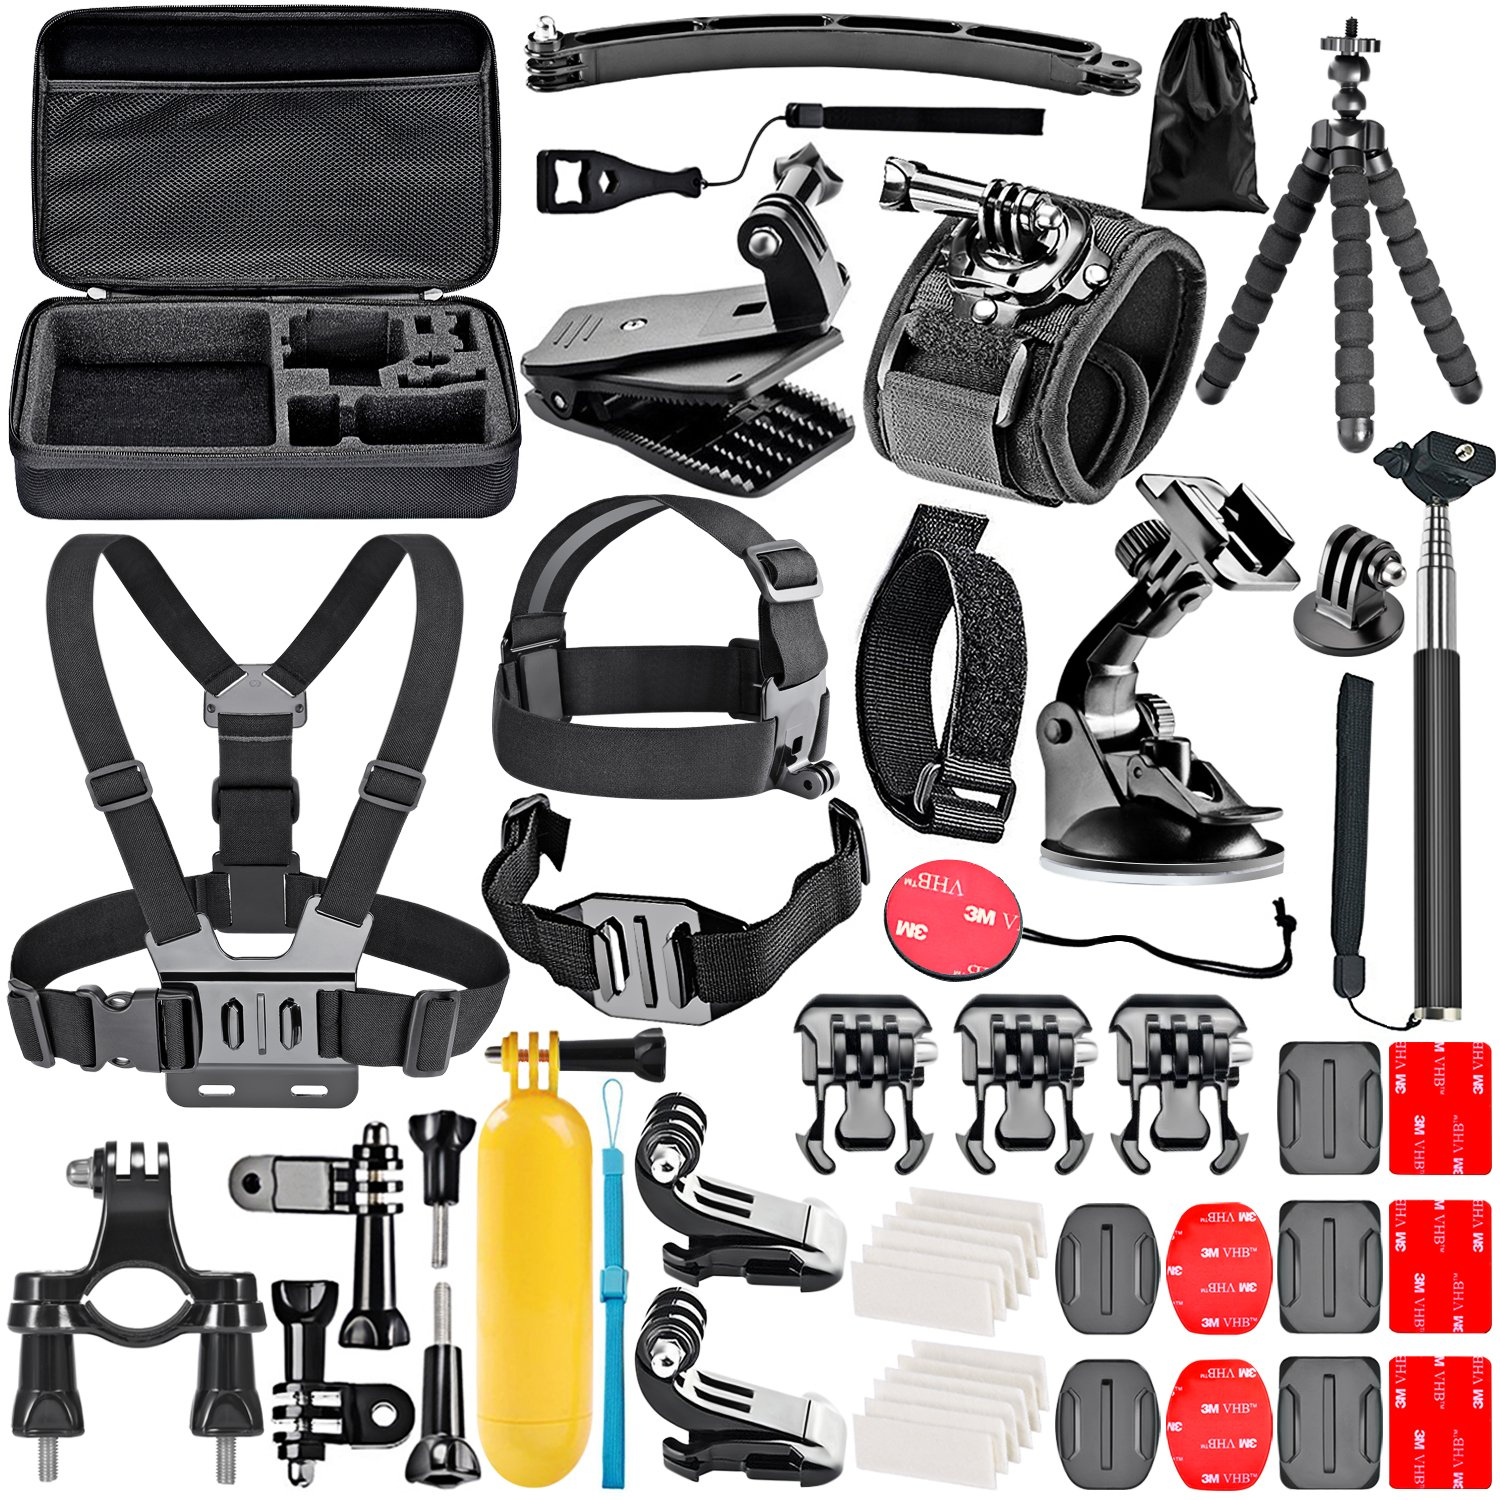 Neewer 50-in-1 Action Camera Accessory Kit for GoPro Hero Session/5 Hero 1 2 3 3+ 4 5 6 SJ4000 5000 6000 DBPOWER AKASO VicTsing APEMAN WiMiUS Rollei QUMOX Lightdow Campark and Sony Sports DV and More by Neewer